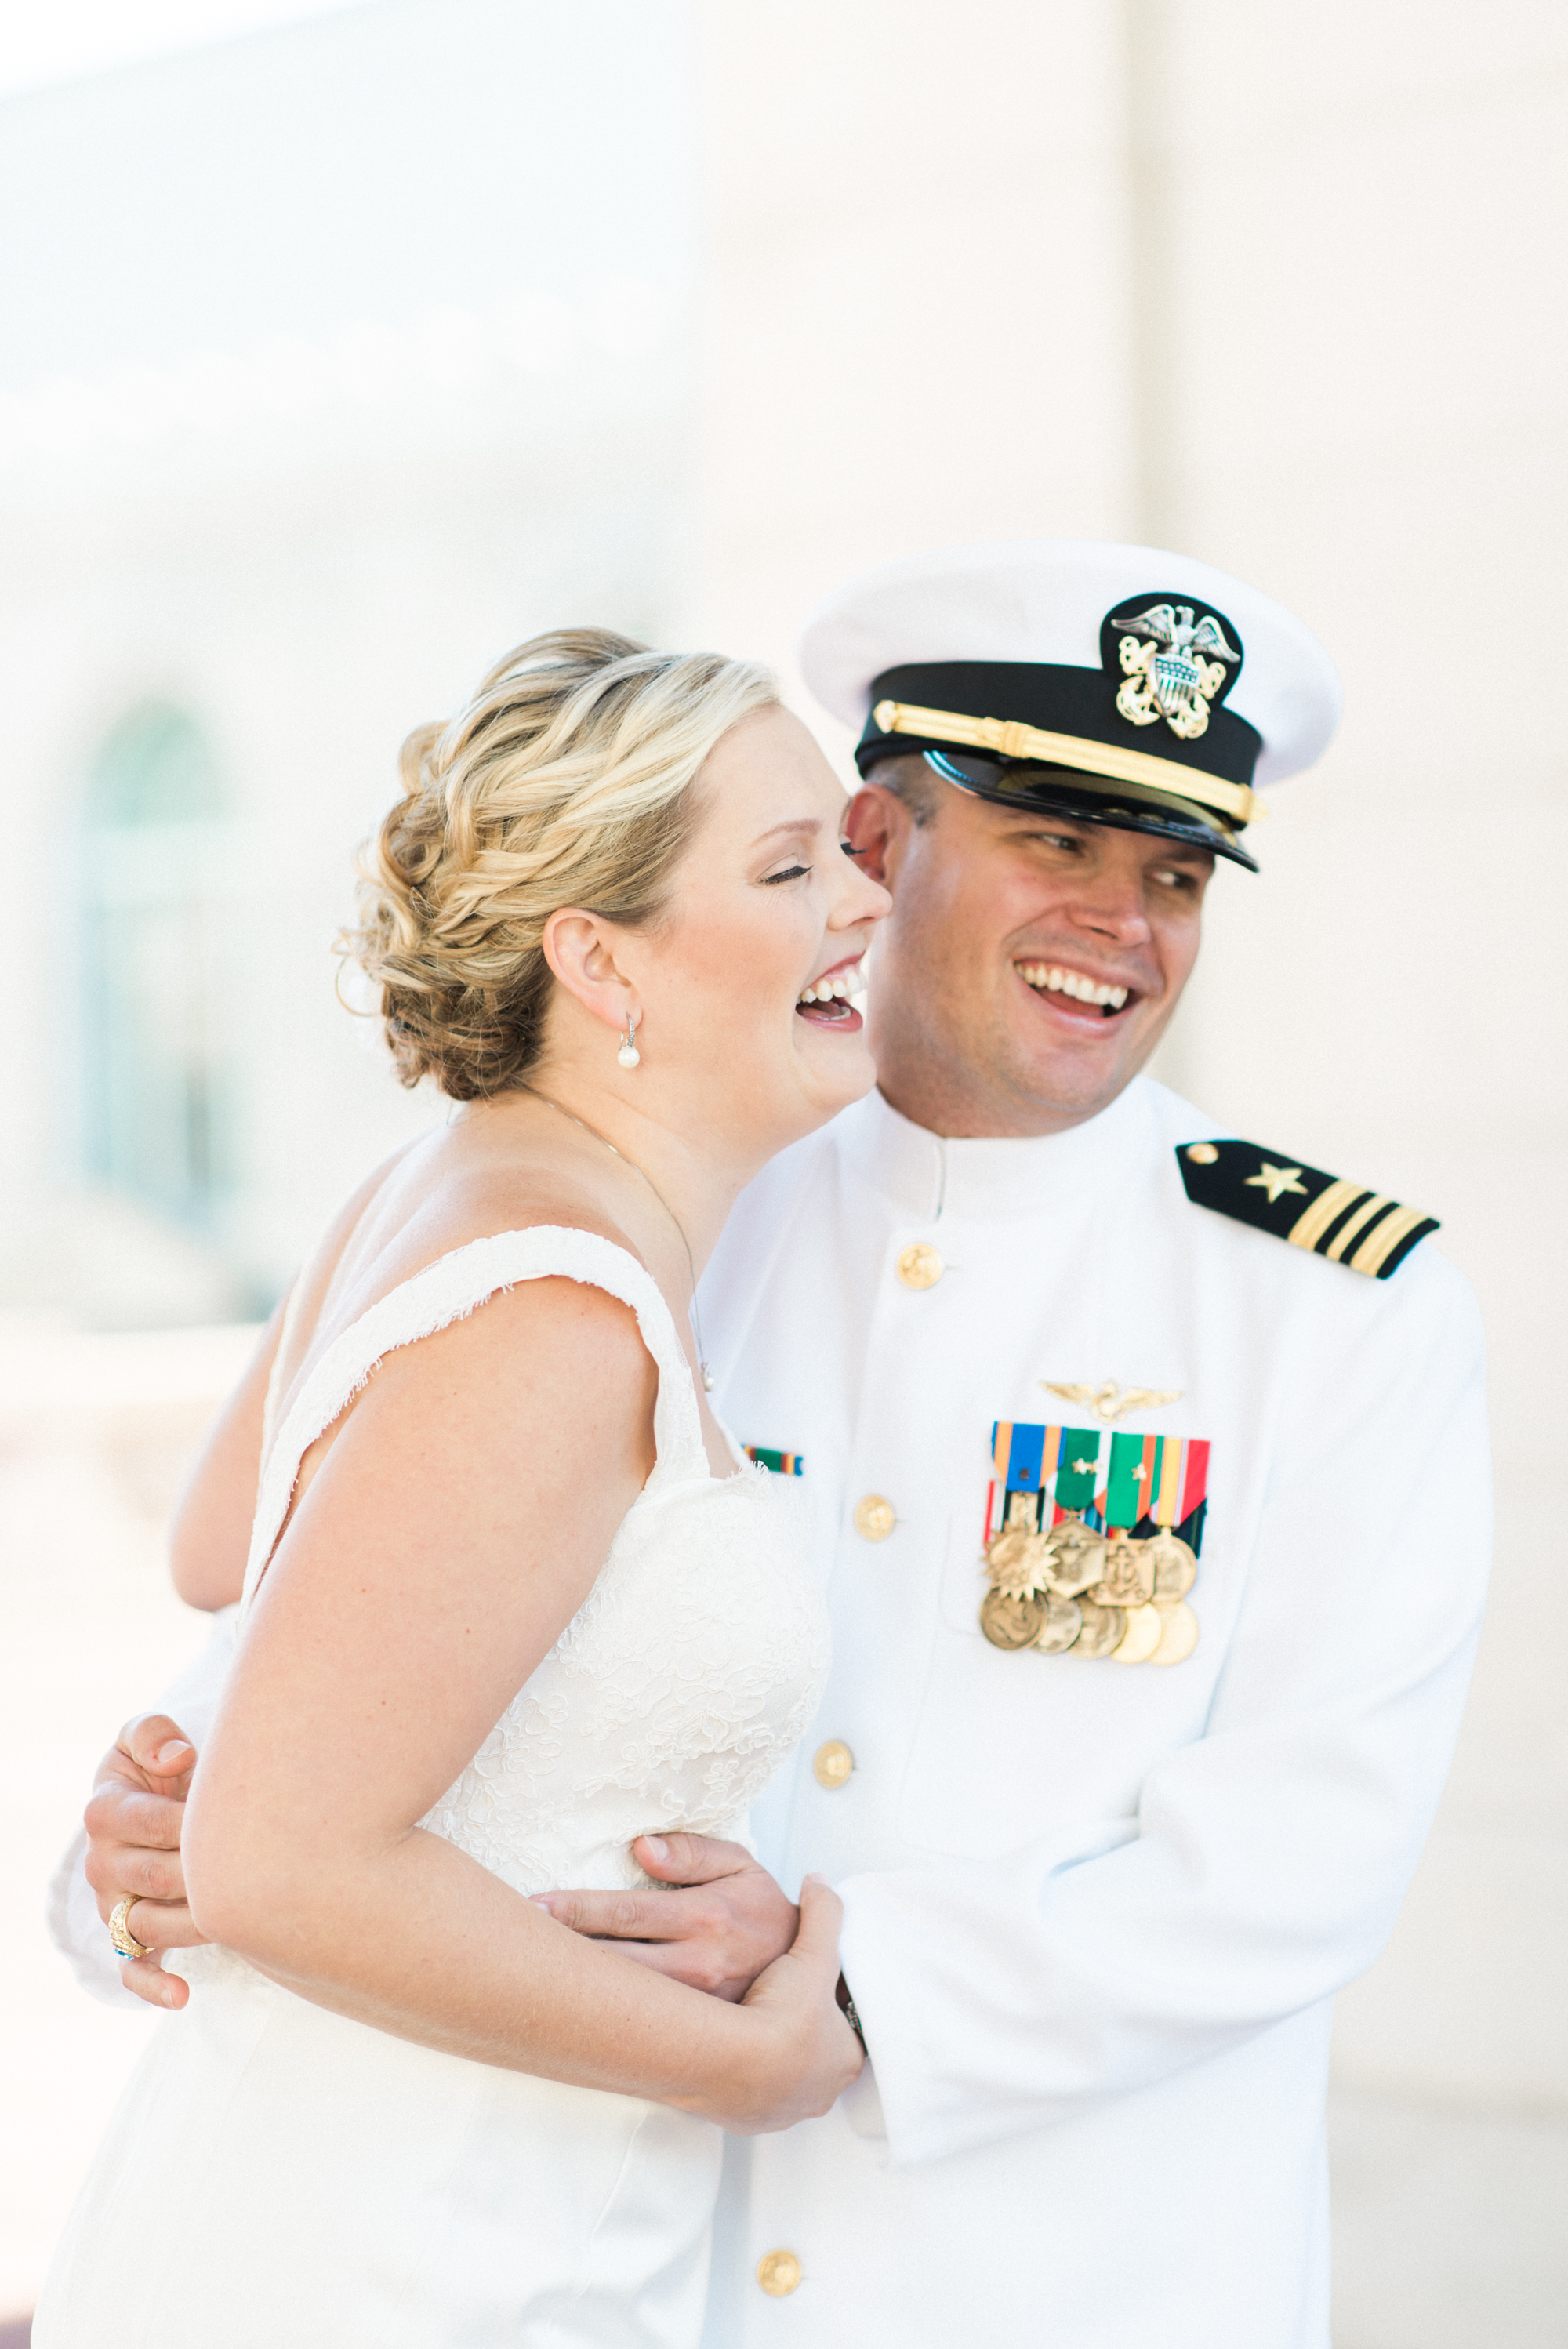 USNA-maritime-wedding-day-jj(35of233).jpg